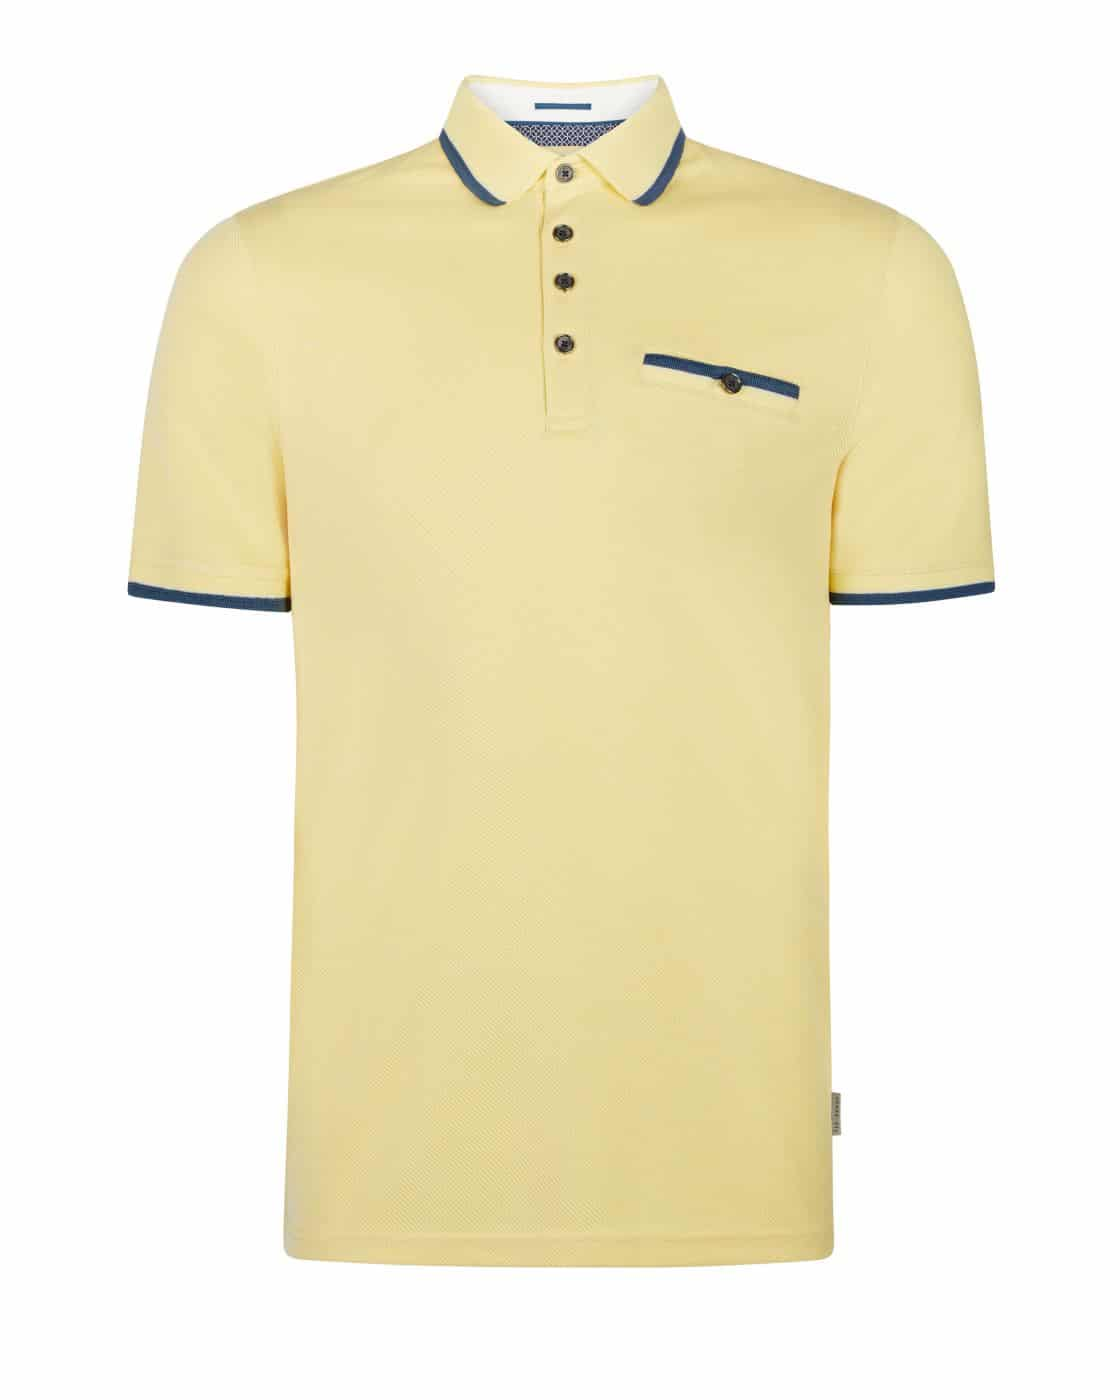 c584cd417d292a TED BAKER HABTAT YELLOW SOFT TOUCH POLO SHIRT